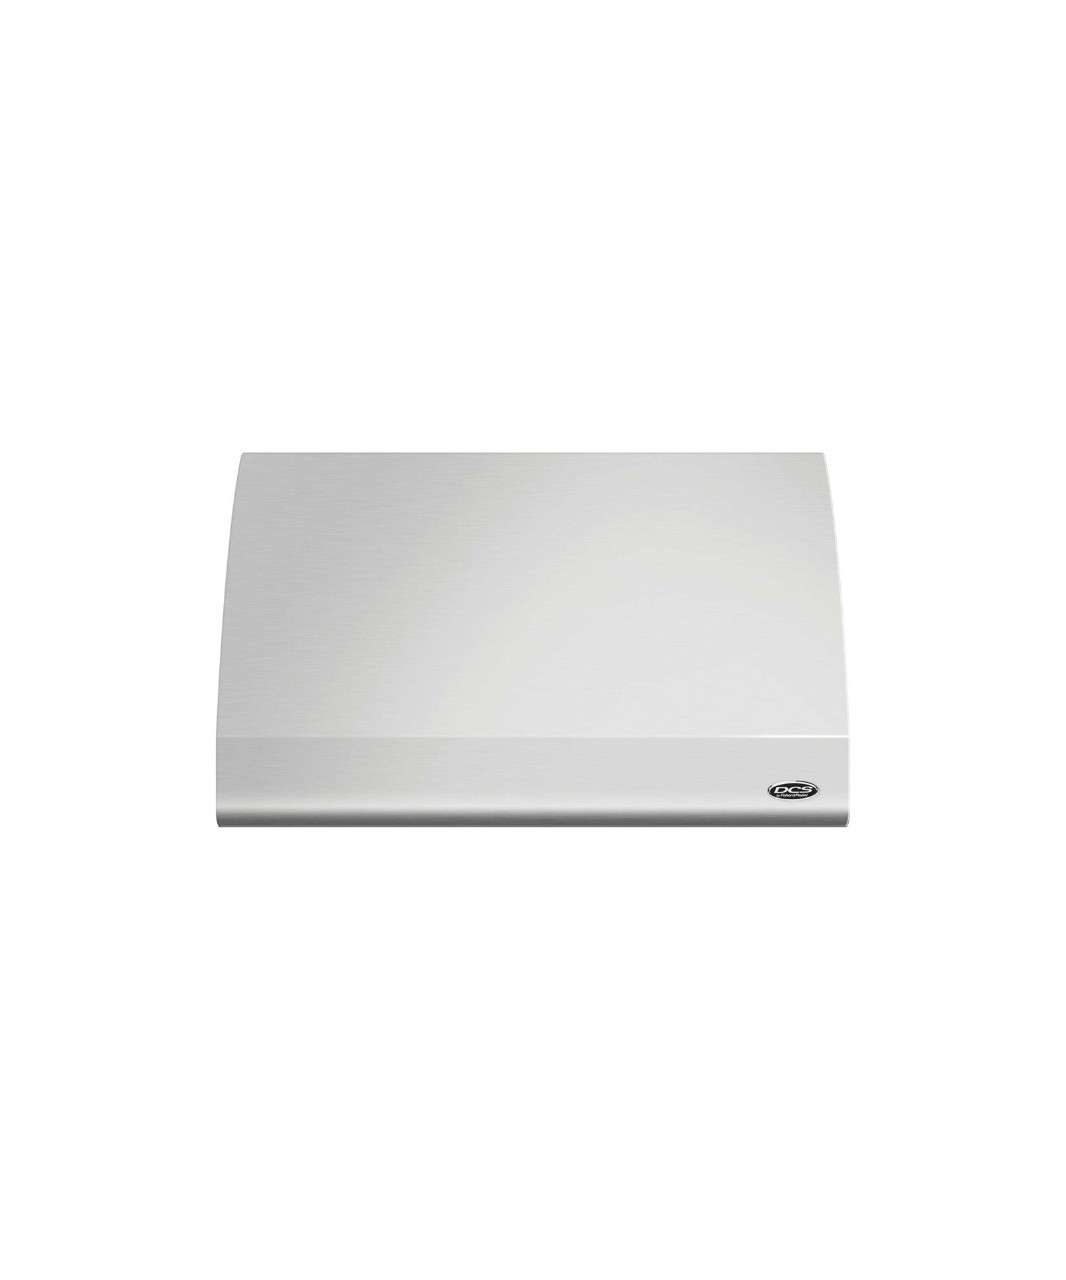 """Professional 30"""" Stainless Steel Canopy Pro Style Wall Mount Range Hood - 600 CFM"""